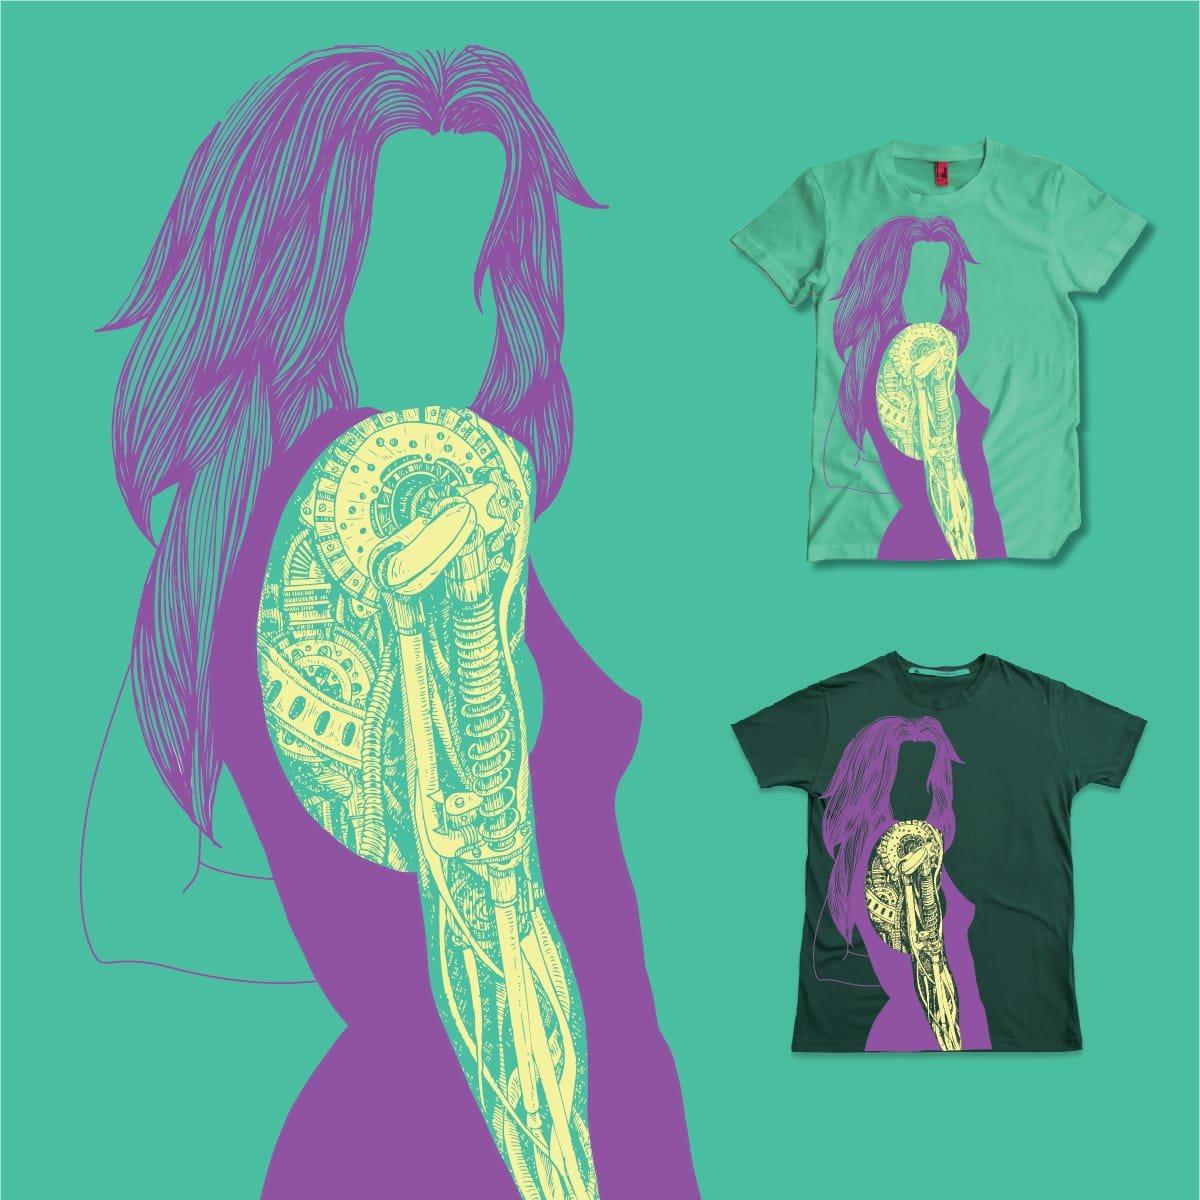 Tech is sexy by k-sha on Threadless